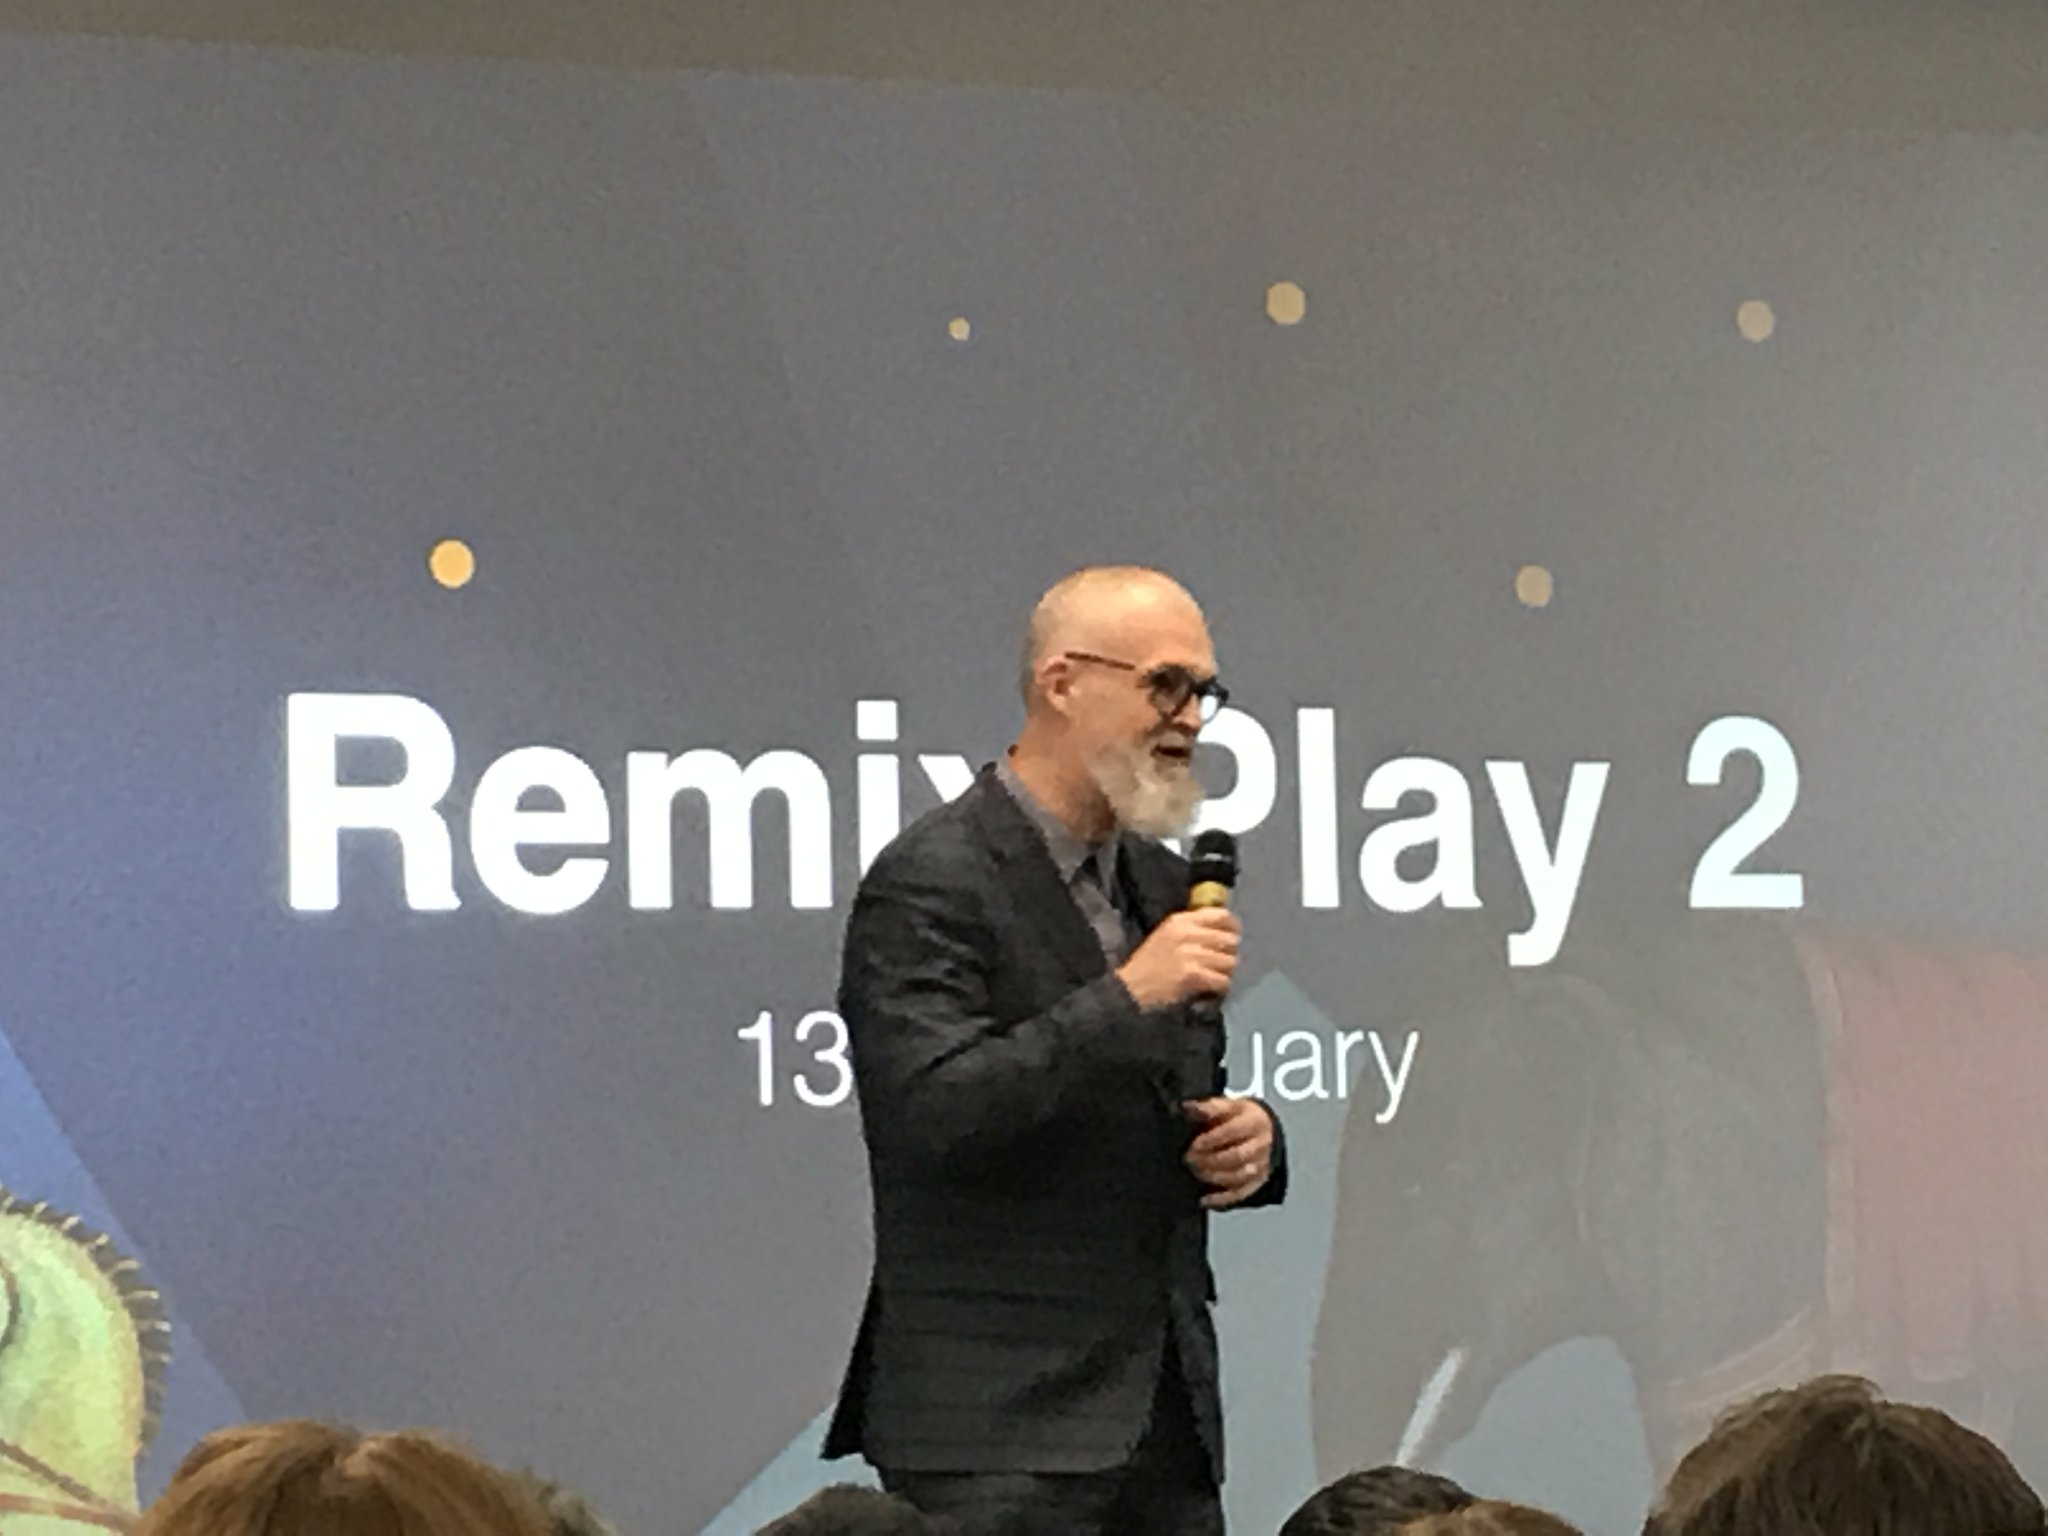 .@CovPVCStudents introduces #RemixPlay2 in the @disrupt_learn lab https://t.co/CuFuu9TROT